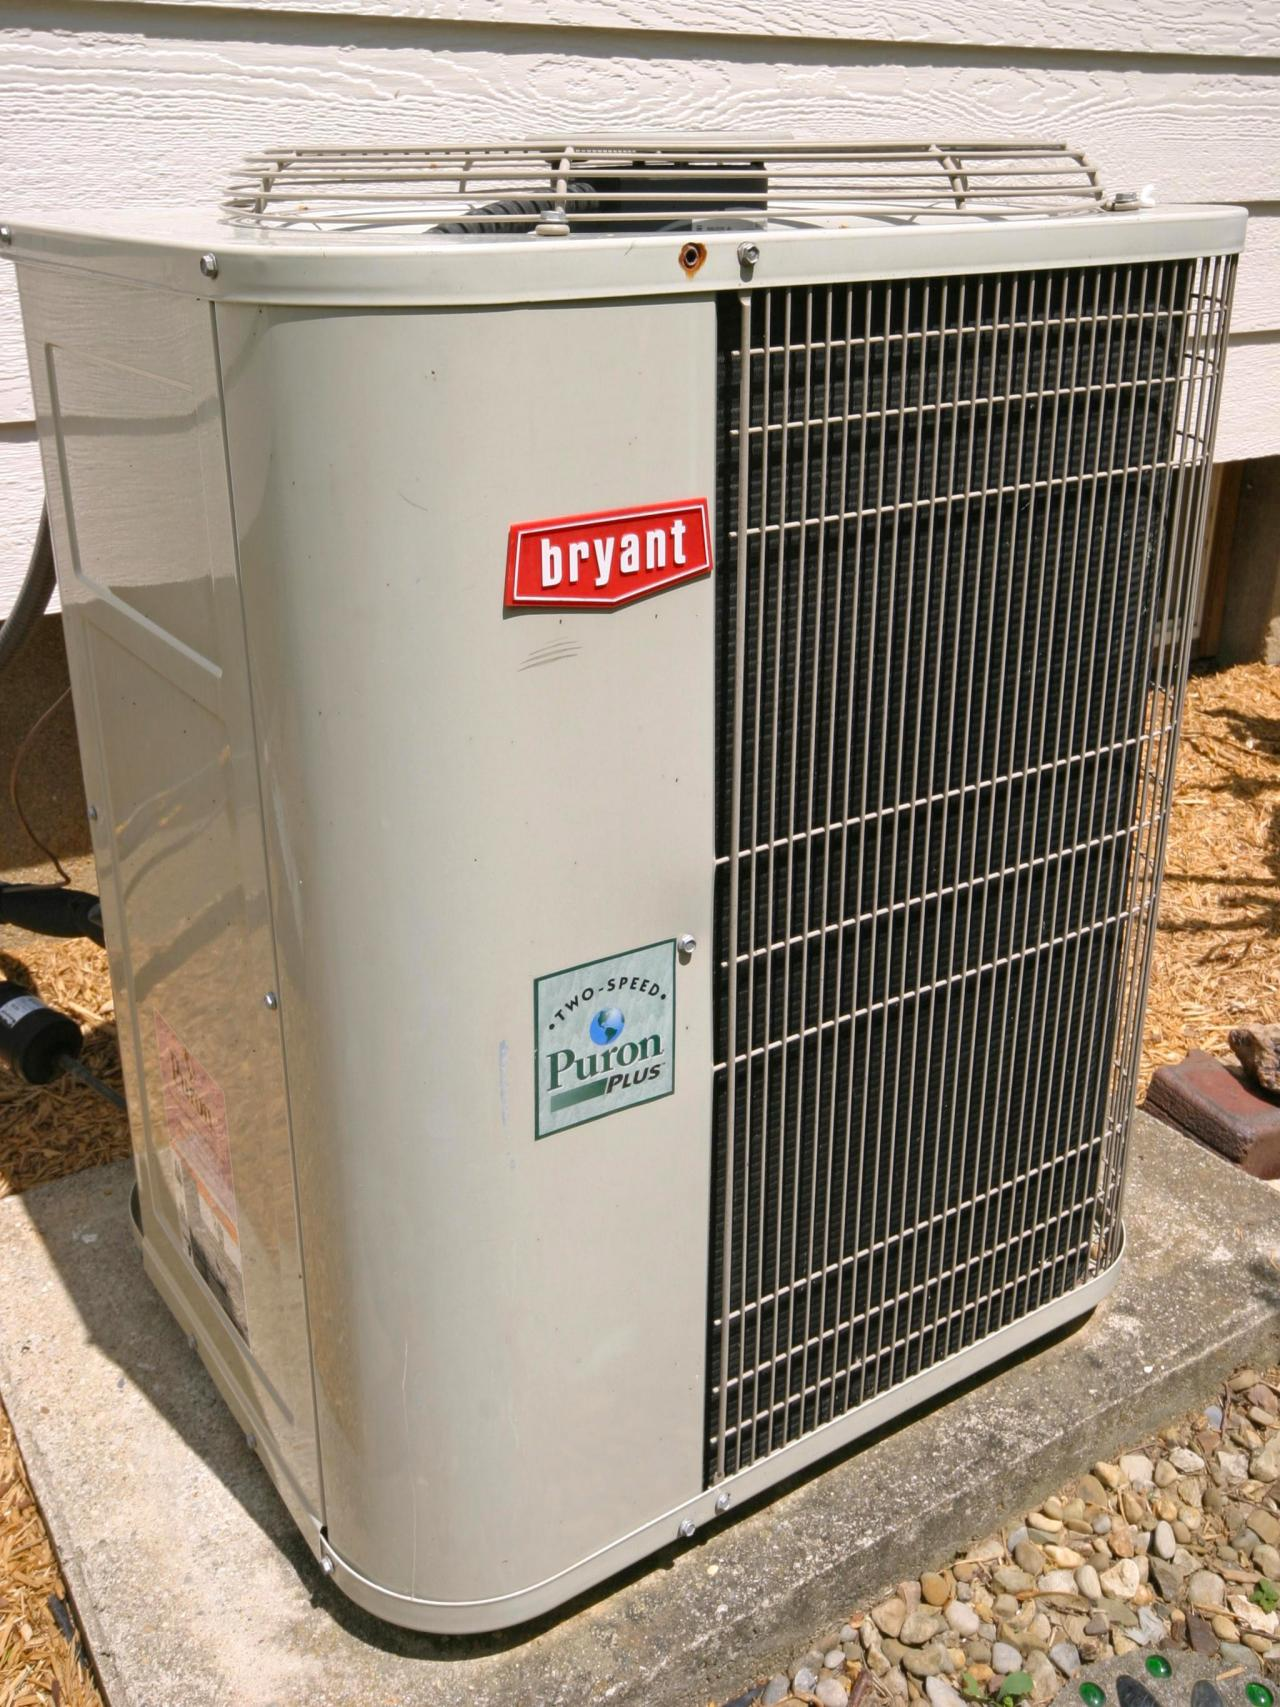 Replace Old Heating and Air Unit With New Efficient HVAC System | HGTV